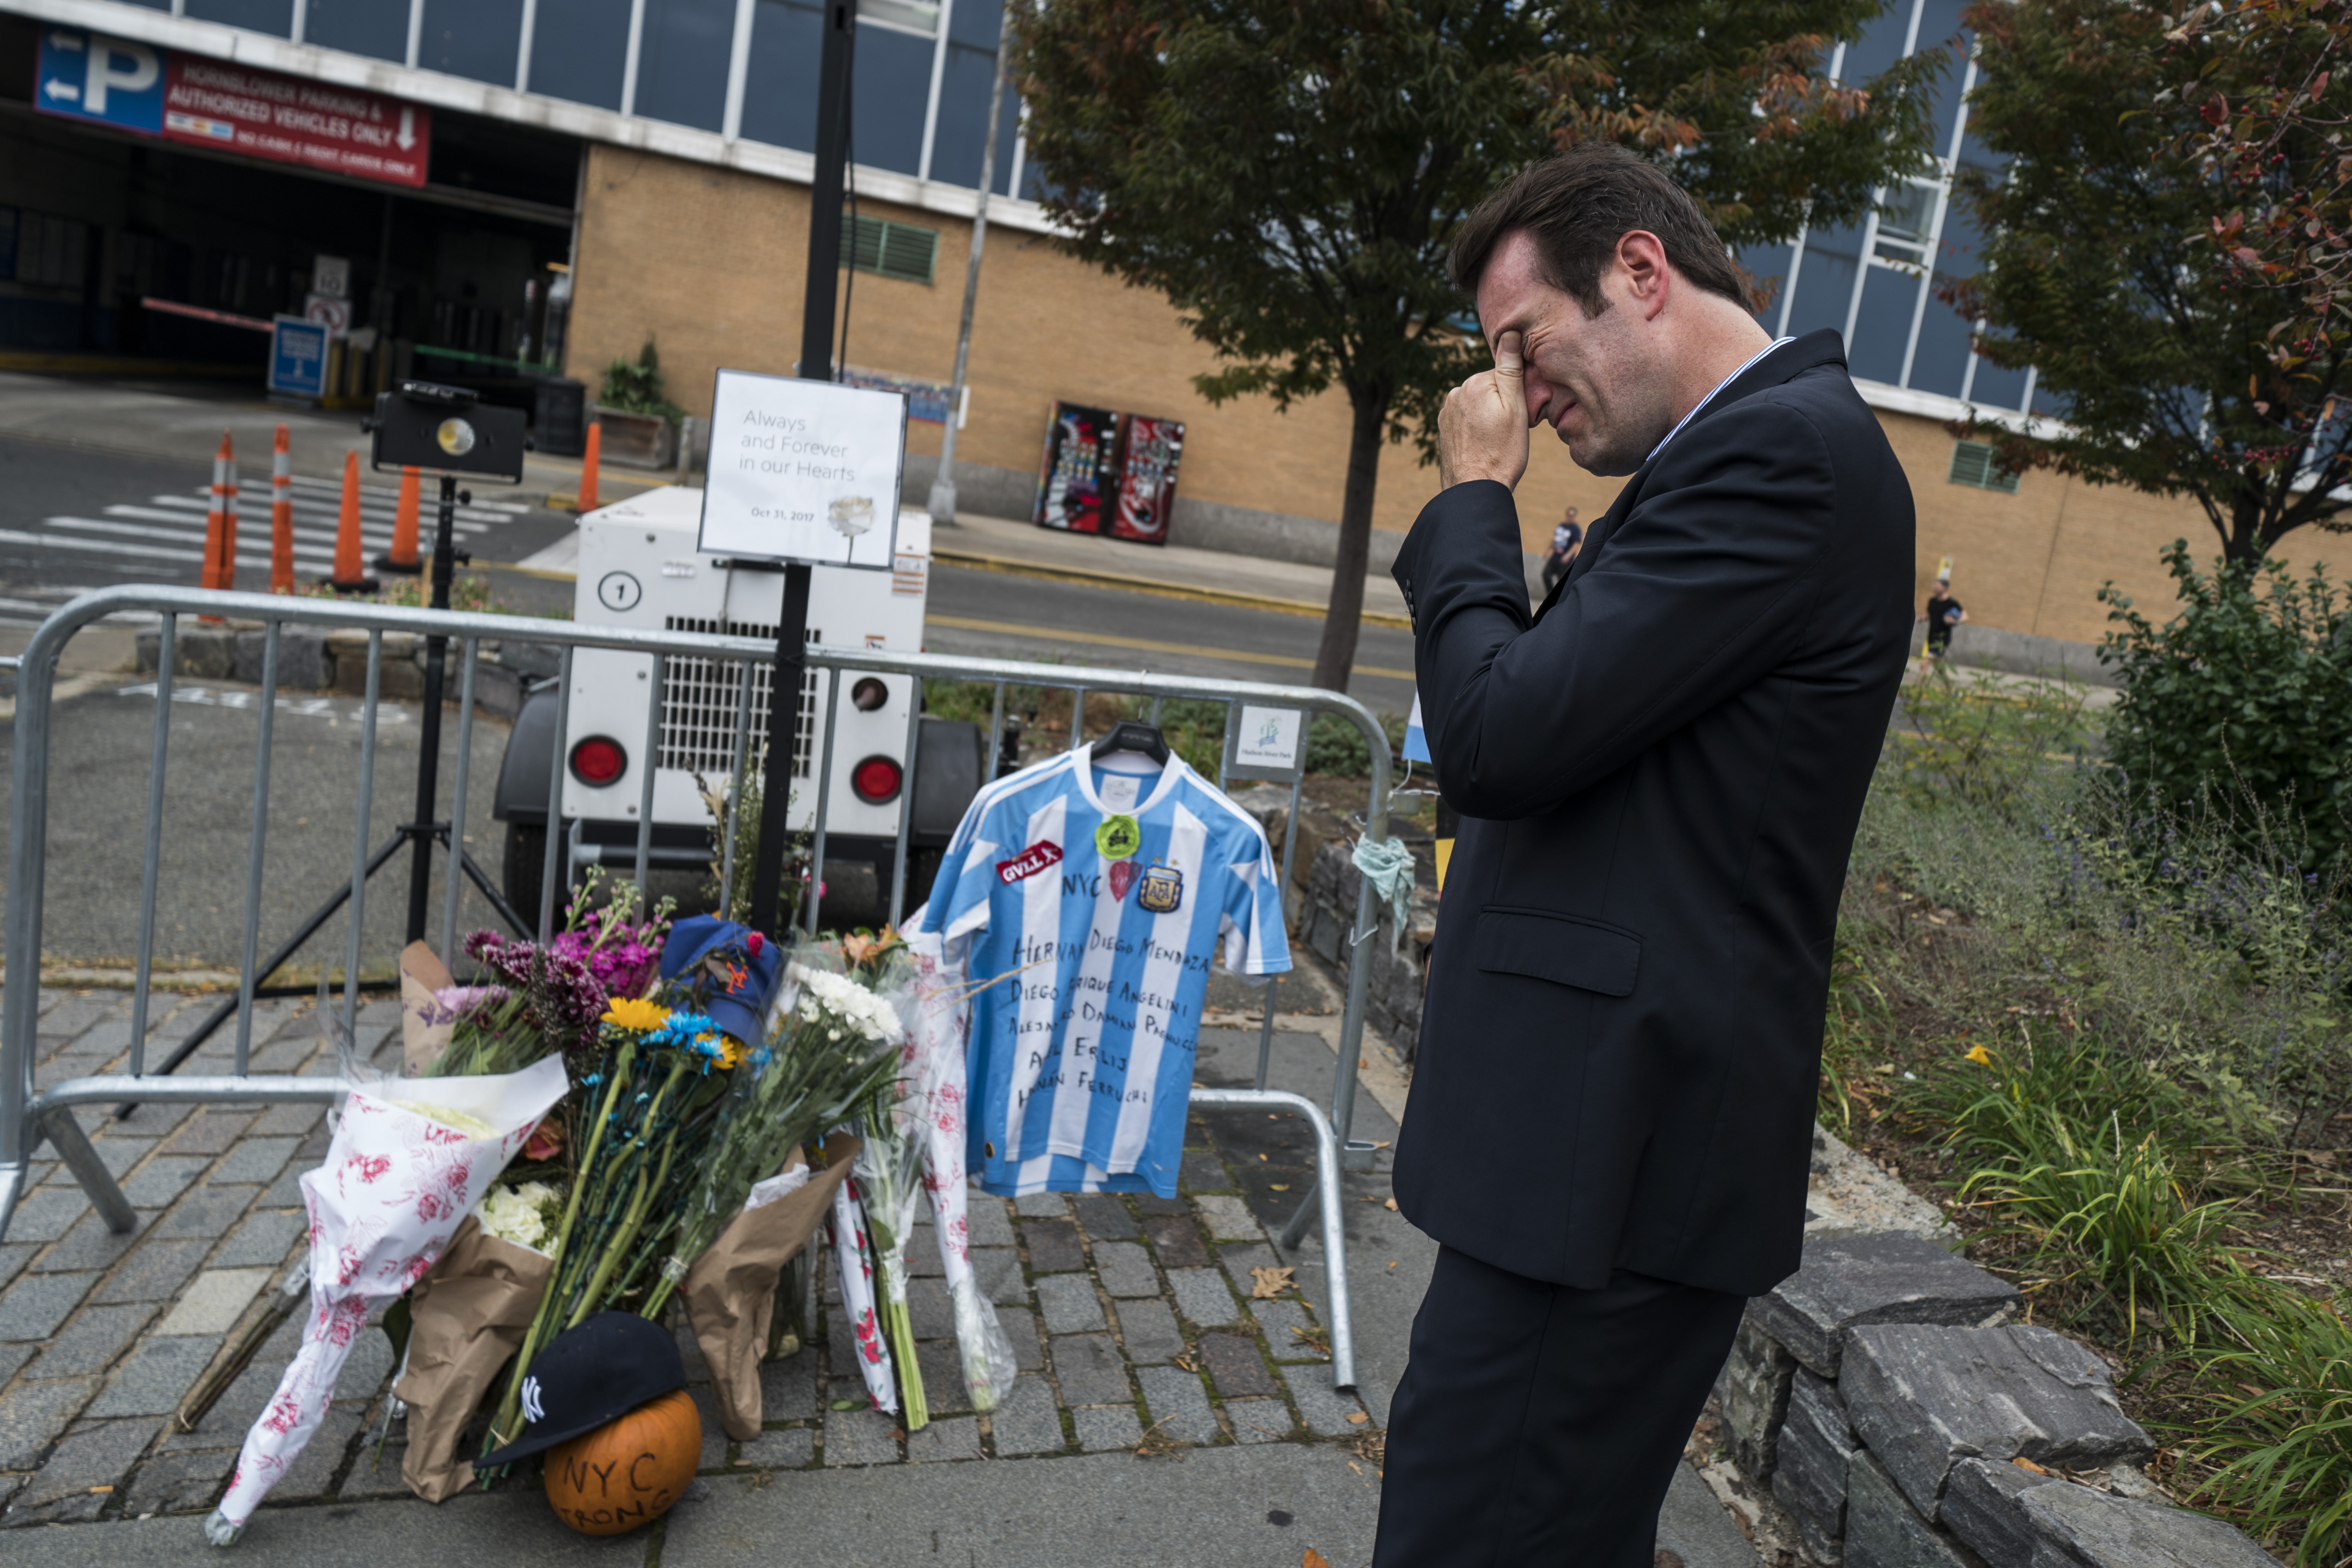 A man places an Argentinian soccer jersey on November 2 at a makeshift memorial for the October 31 terror attack victims in New York. Sayfullo Saipov, the Uzbekistani immigrant suspected in the attack, is accused of killing eight people with a rental truck, including five Argentine men who were celebrating the 30th anniversary of their high school graduation. [Jewel Samad/AFP]